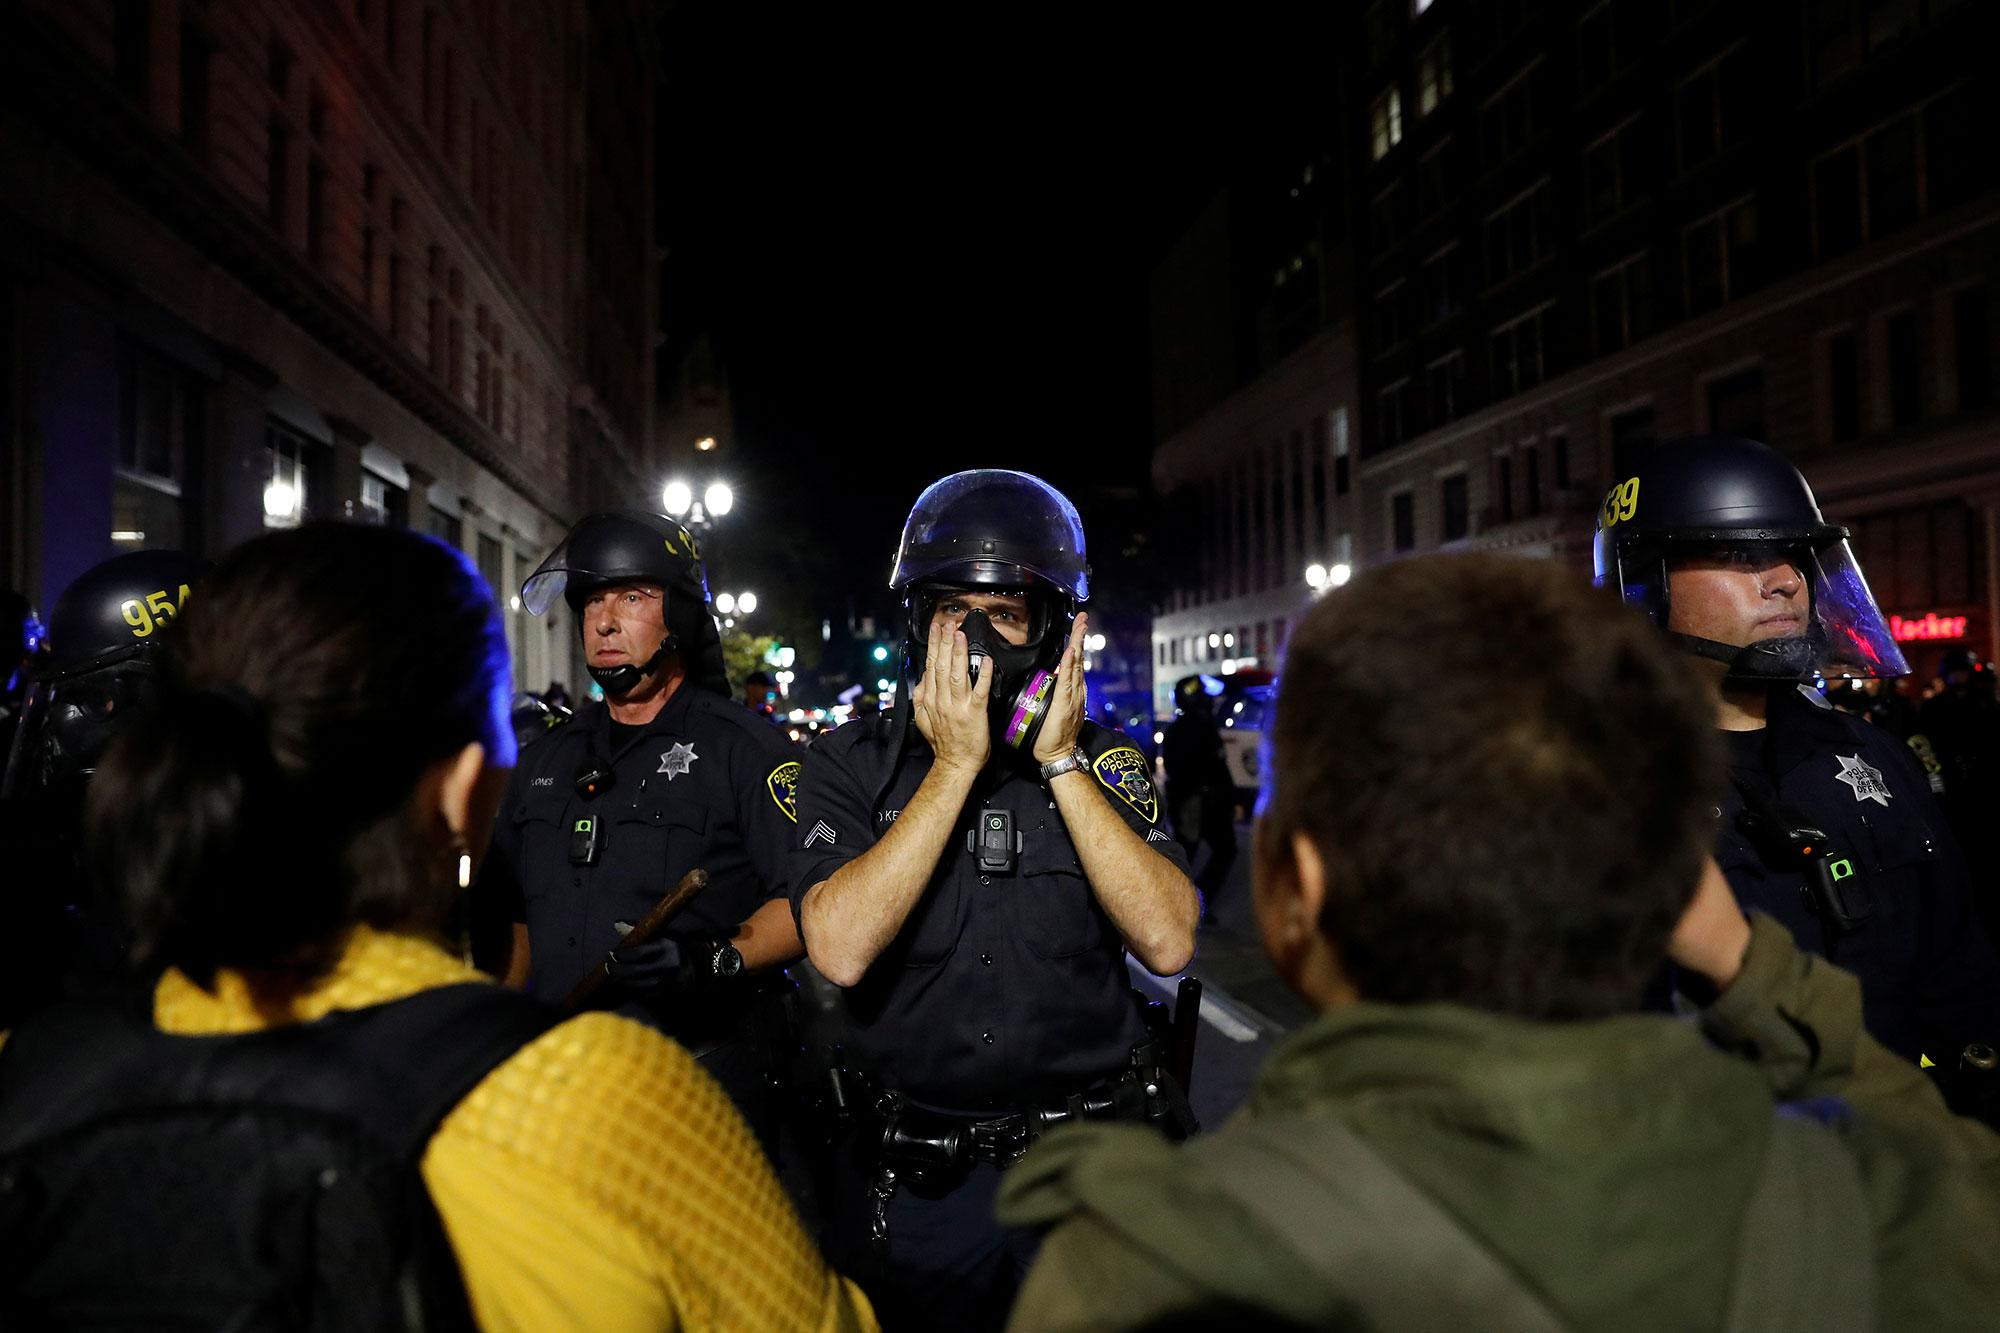 <p>A police officer deploys his gas mask during a demonstration following the election of Donald Trump as President of the United States in Oakland, Calif., on Nov. 10, 2016. (Photo: Stephen Lam/Reuters) </p>